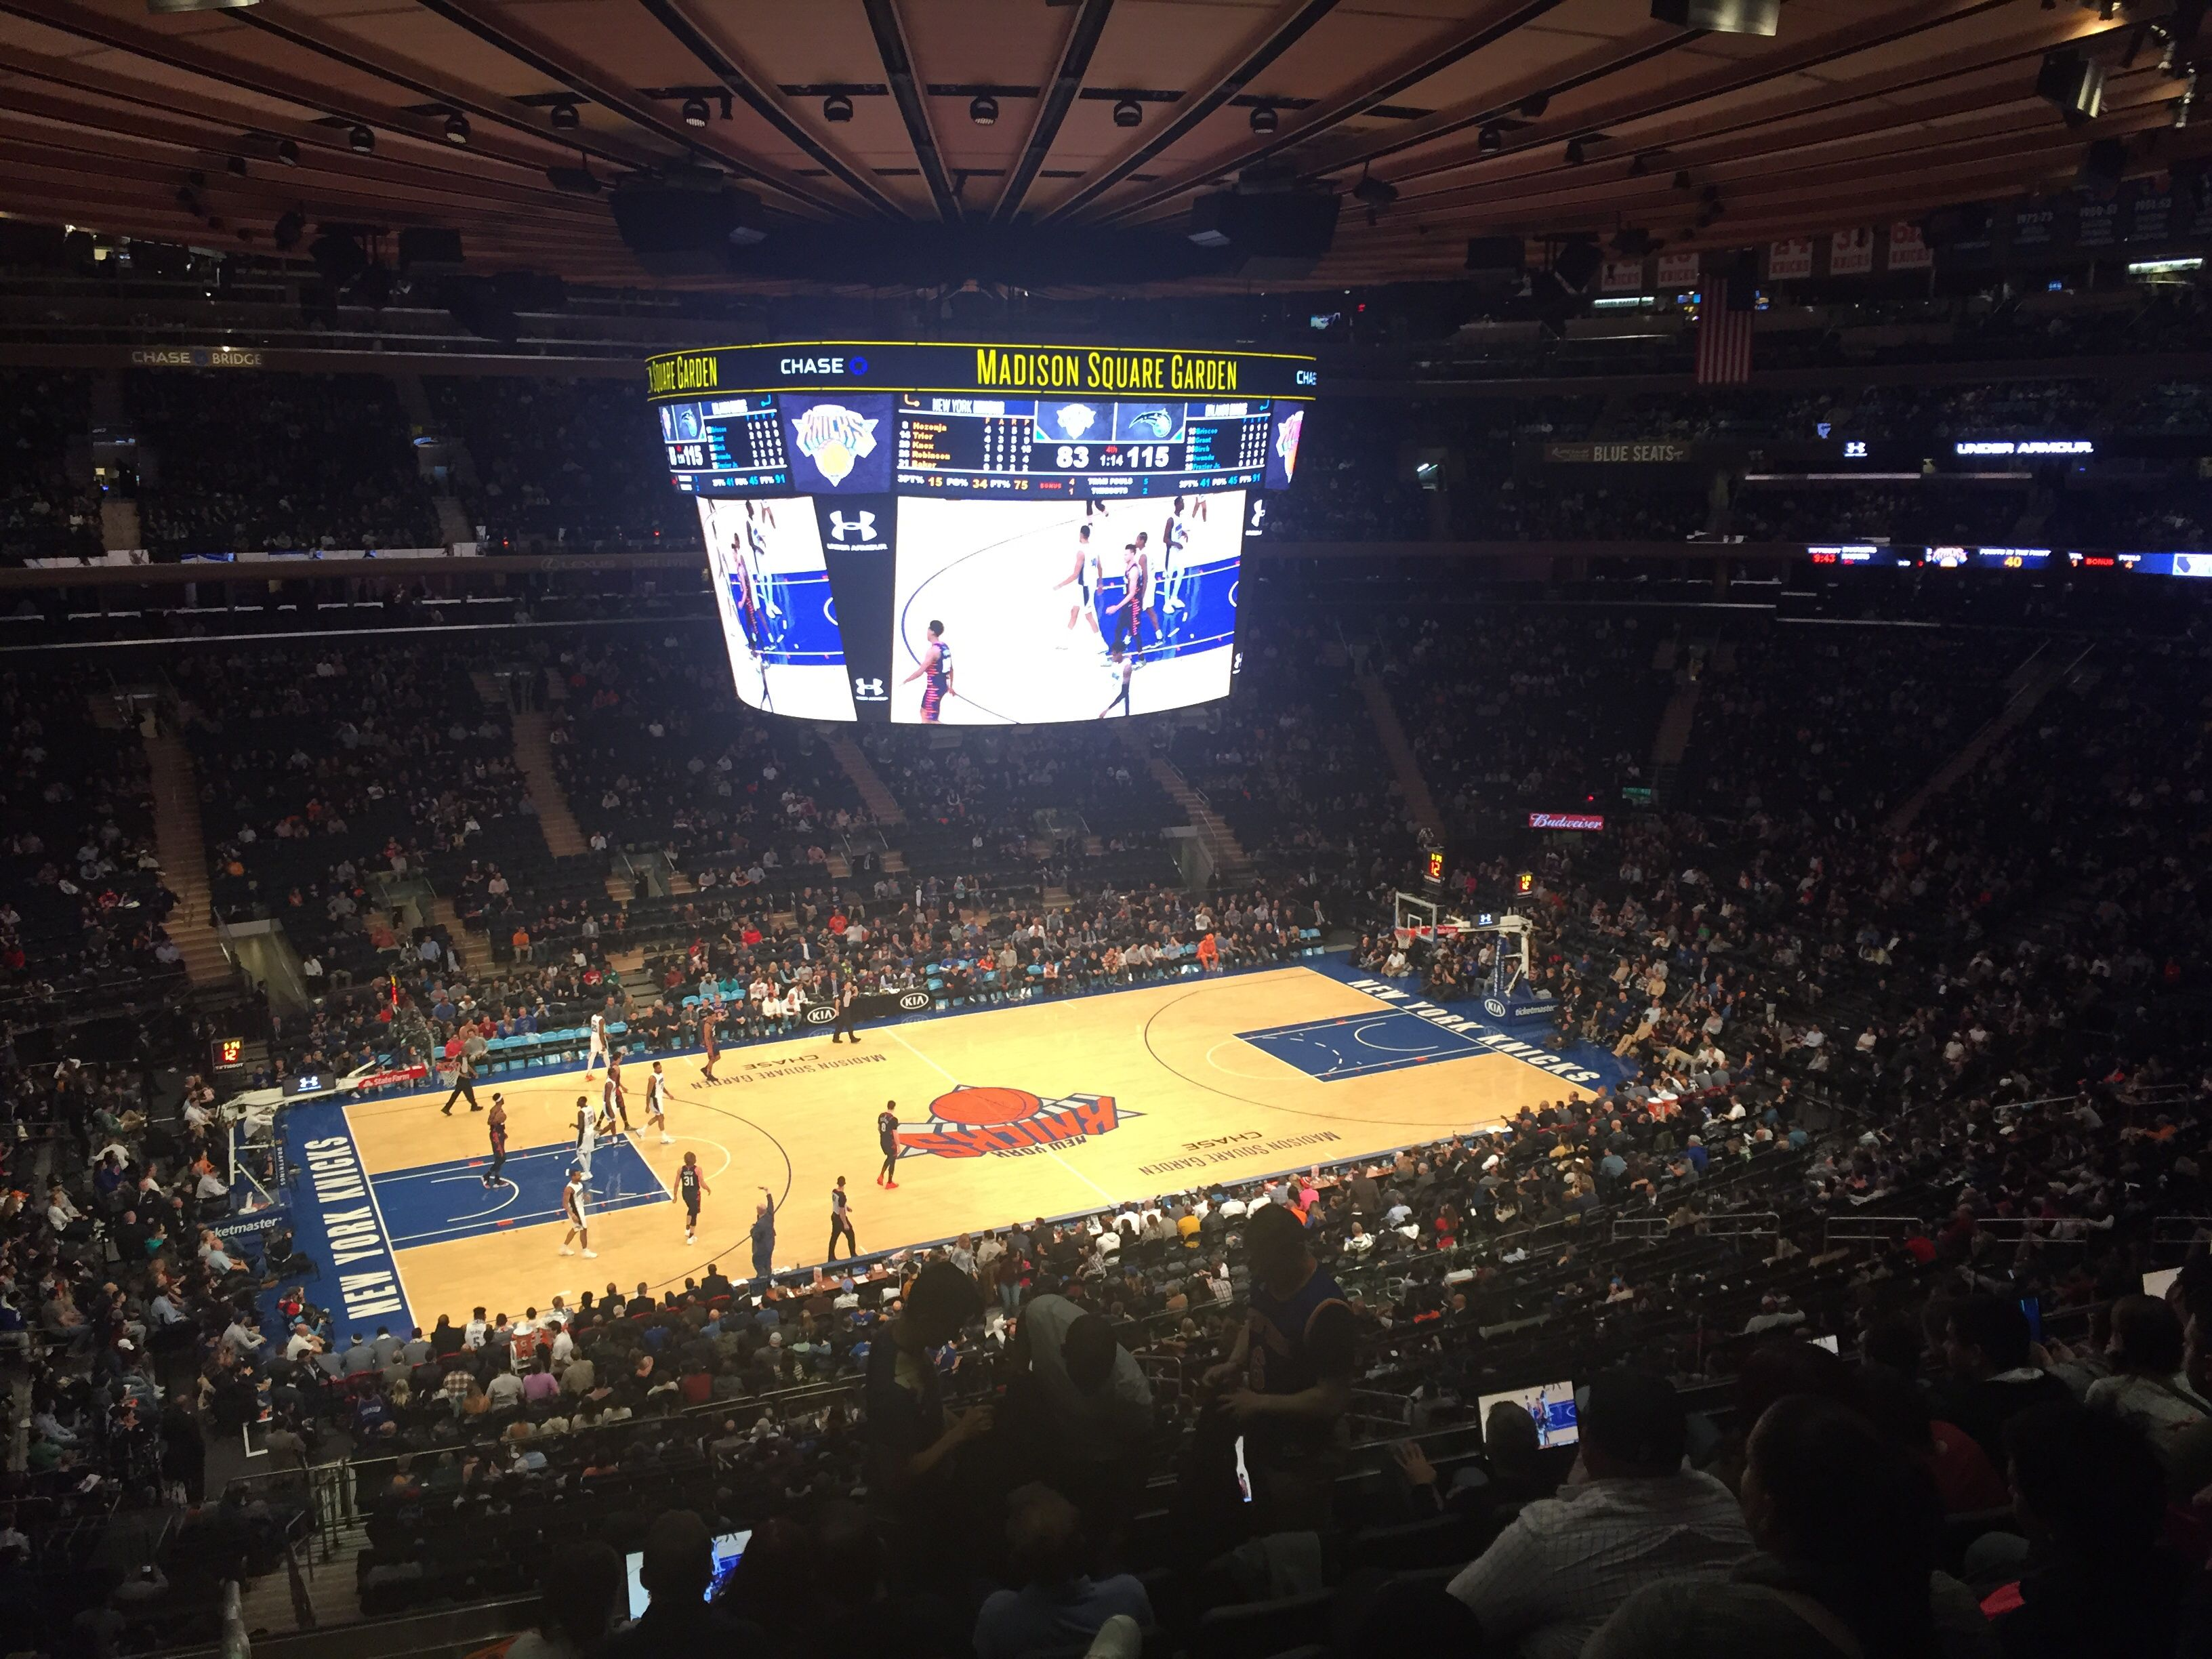 6ee0915961ce4a748a694ed2afa56887 - Capacity Of Madison Square Gardens New York